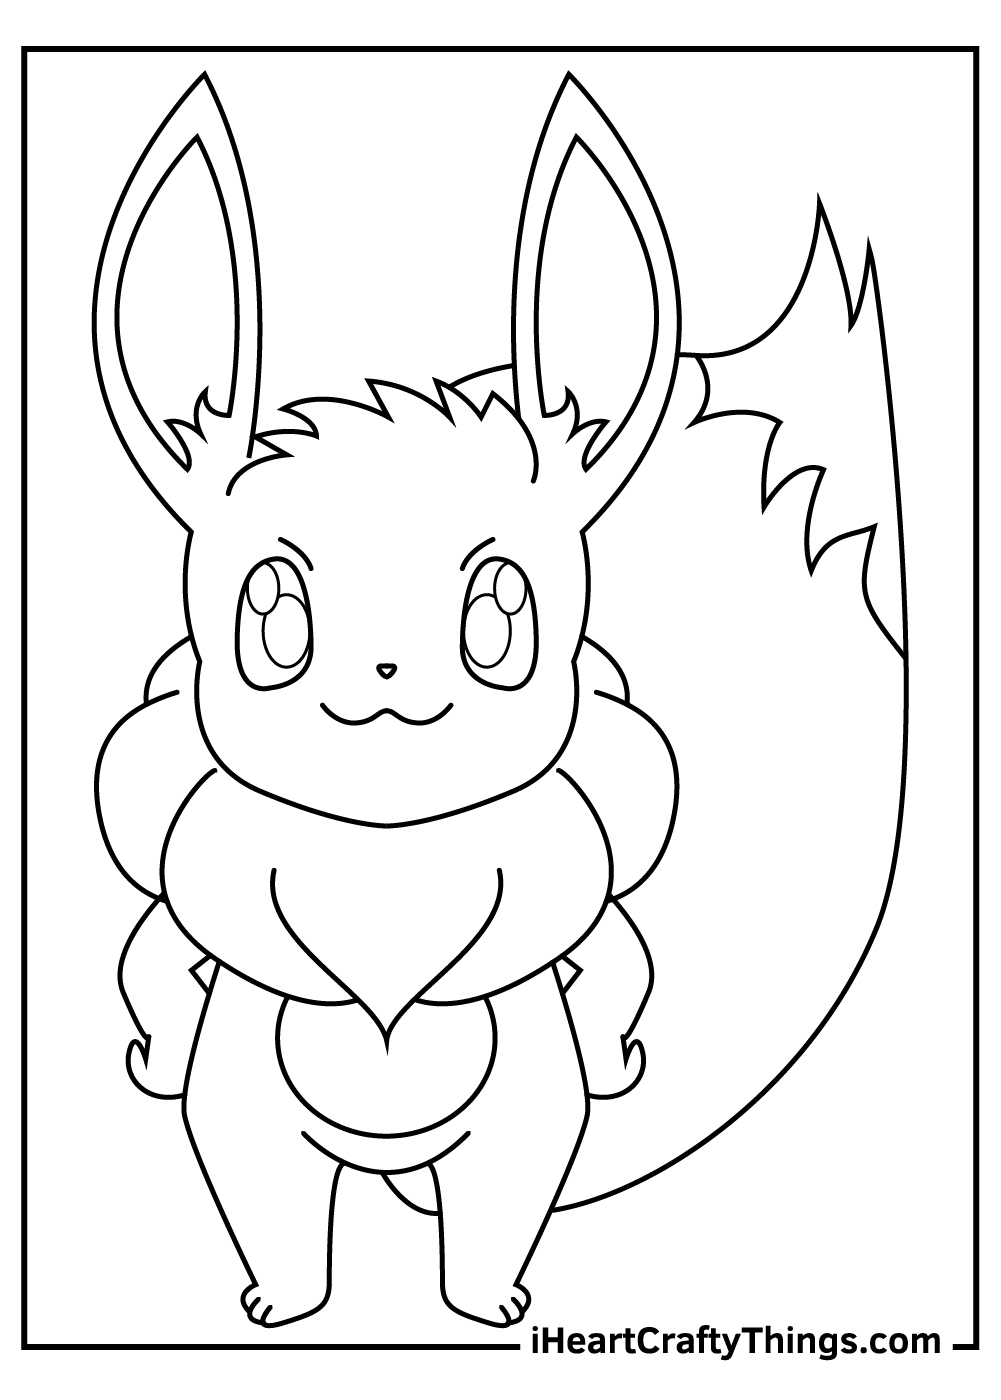 eevee pokemon coloring pages for kids